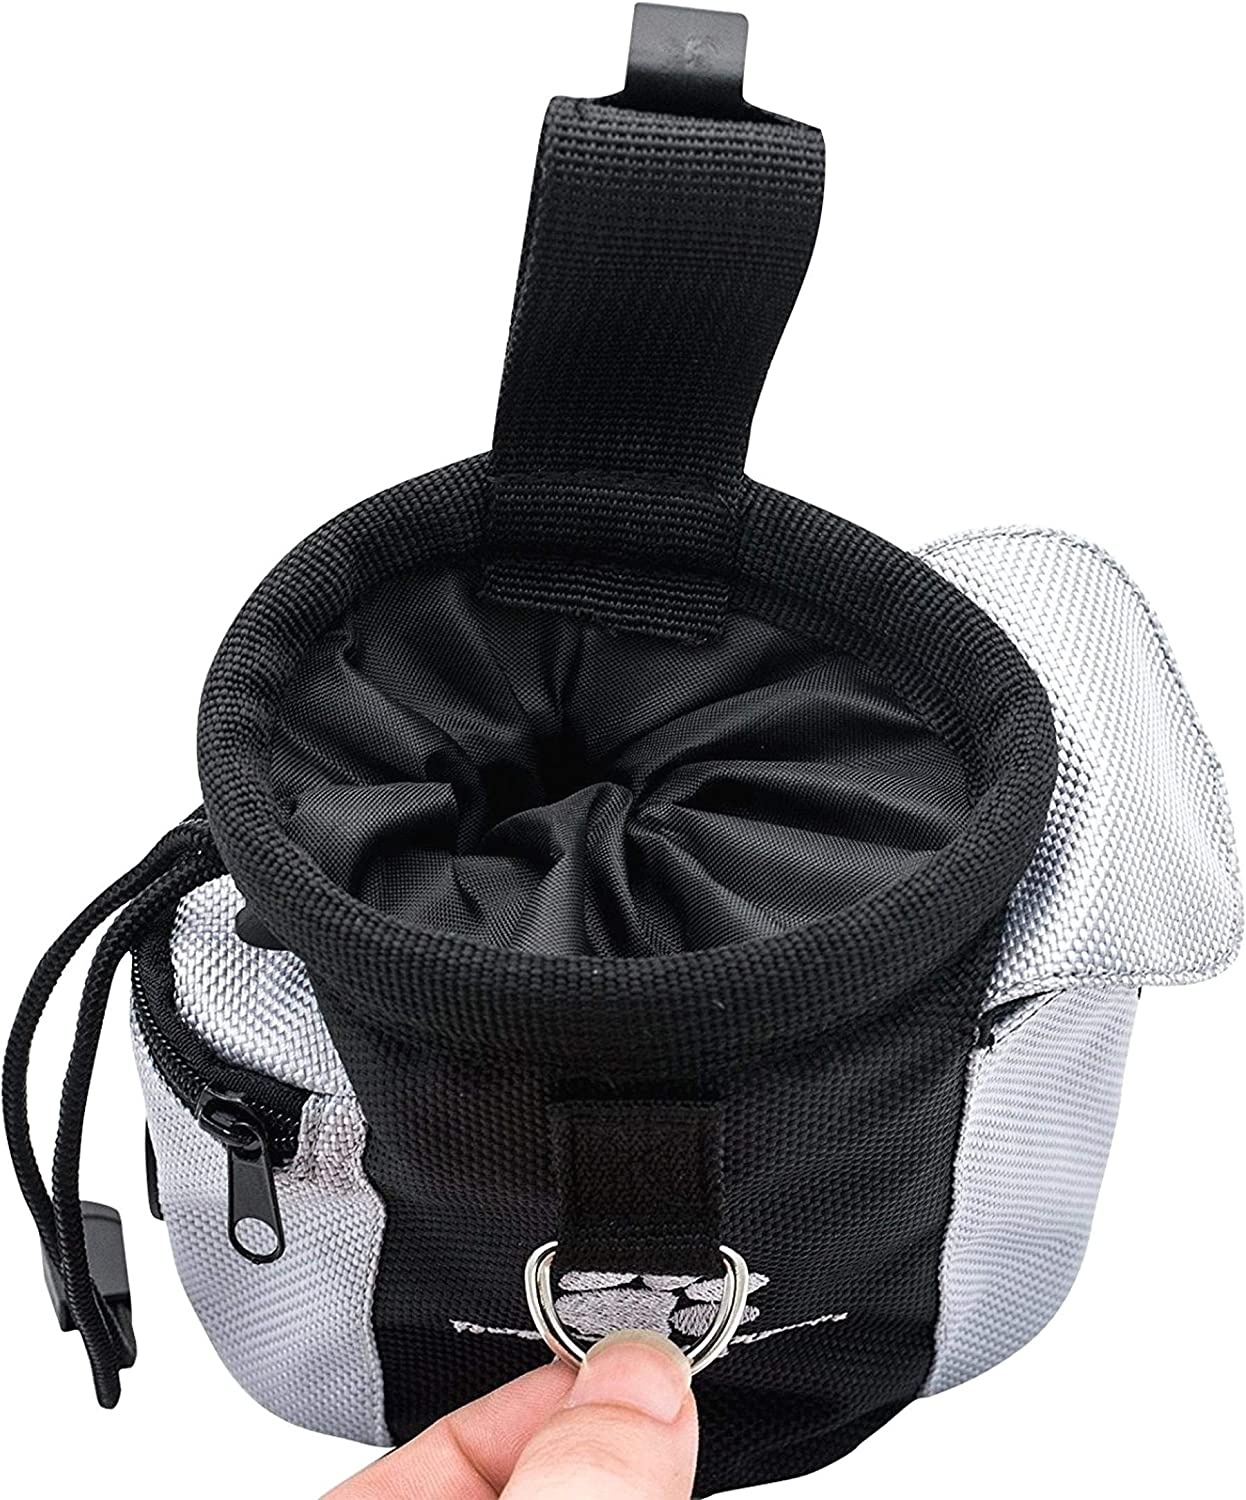 DULALA Dog Treat Small Sachet Pet Training Bag Puppy Walking Pouch with Poop Waste Bag Dispenser Pocket Mouth Adjustable With Waist Clip for pet stuff Bag Dog Treat Pouch Bag